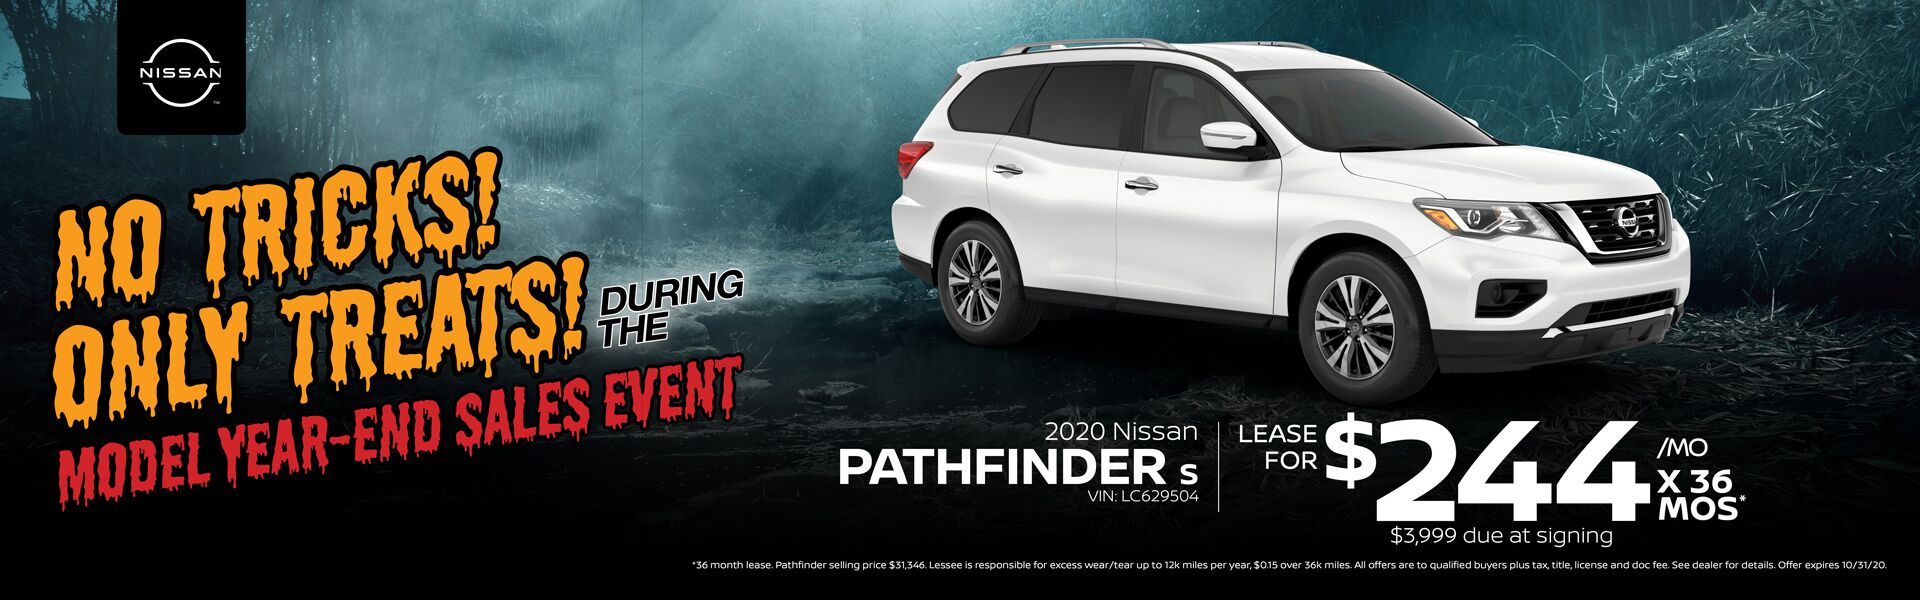 2020 Nissan Pathfinder Lease for $244/mo for 36 mos